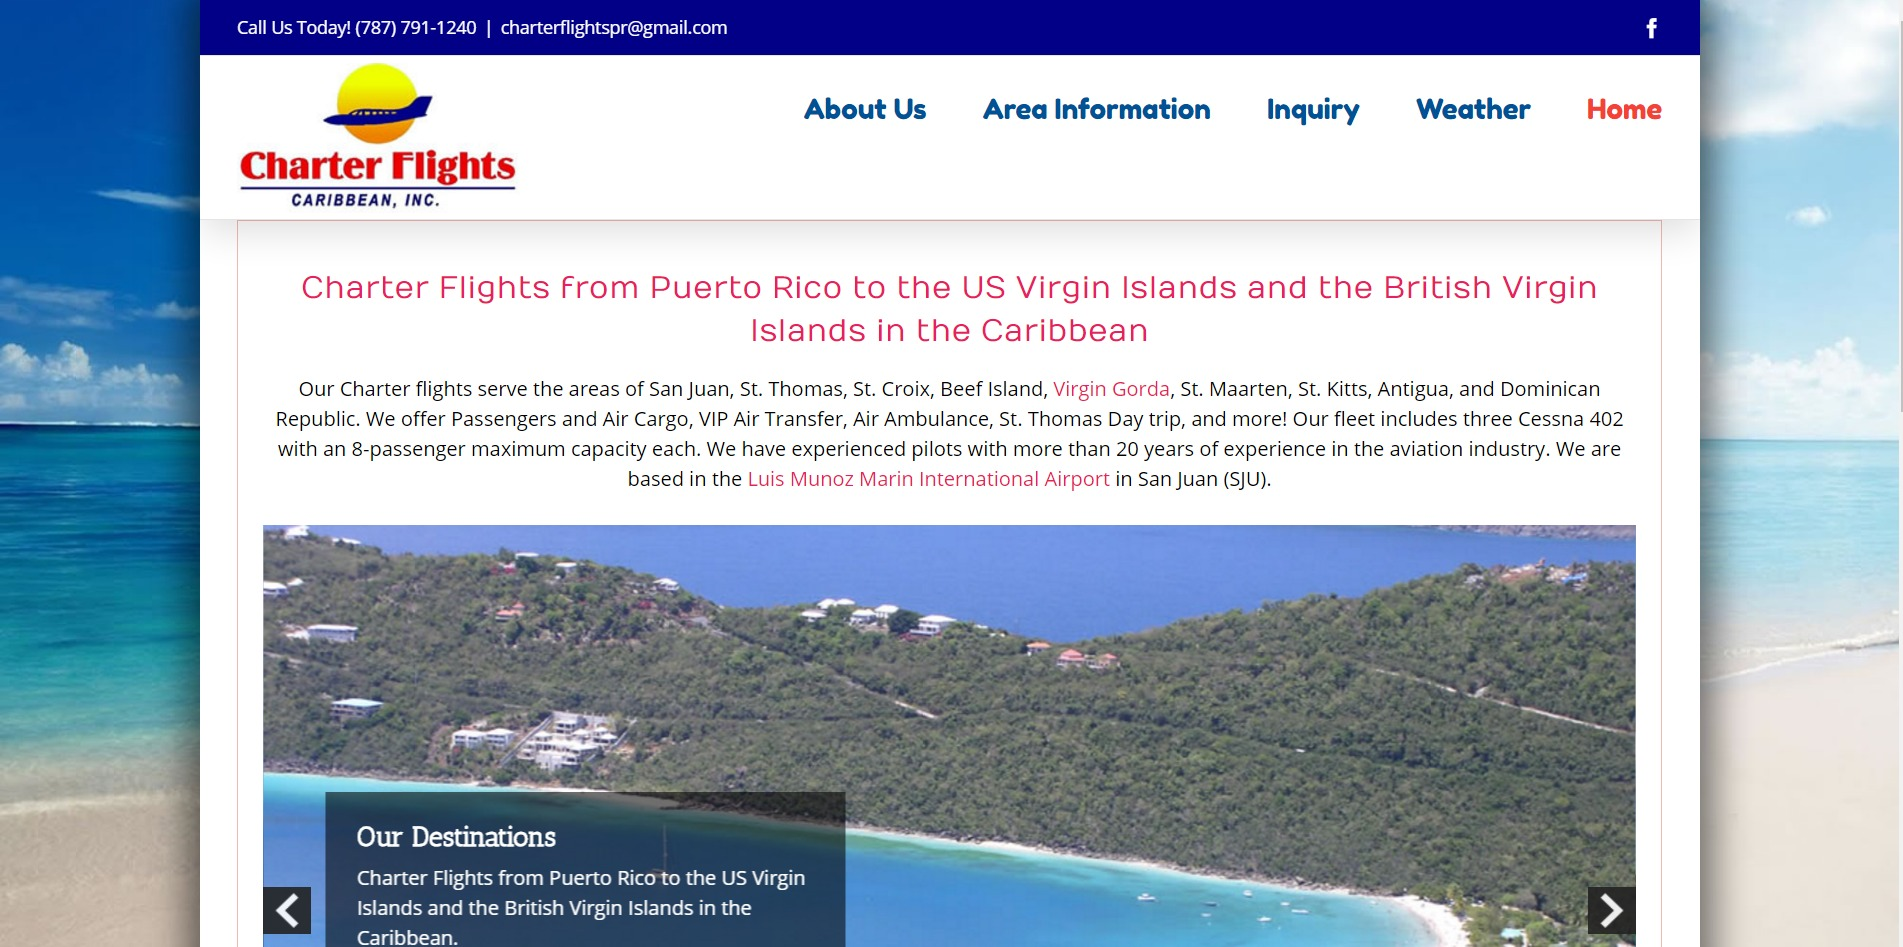 Charter Flights from Puerto Rico to the Caribbean